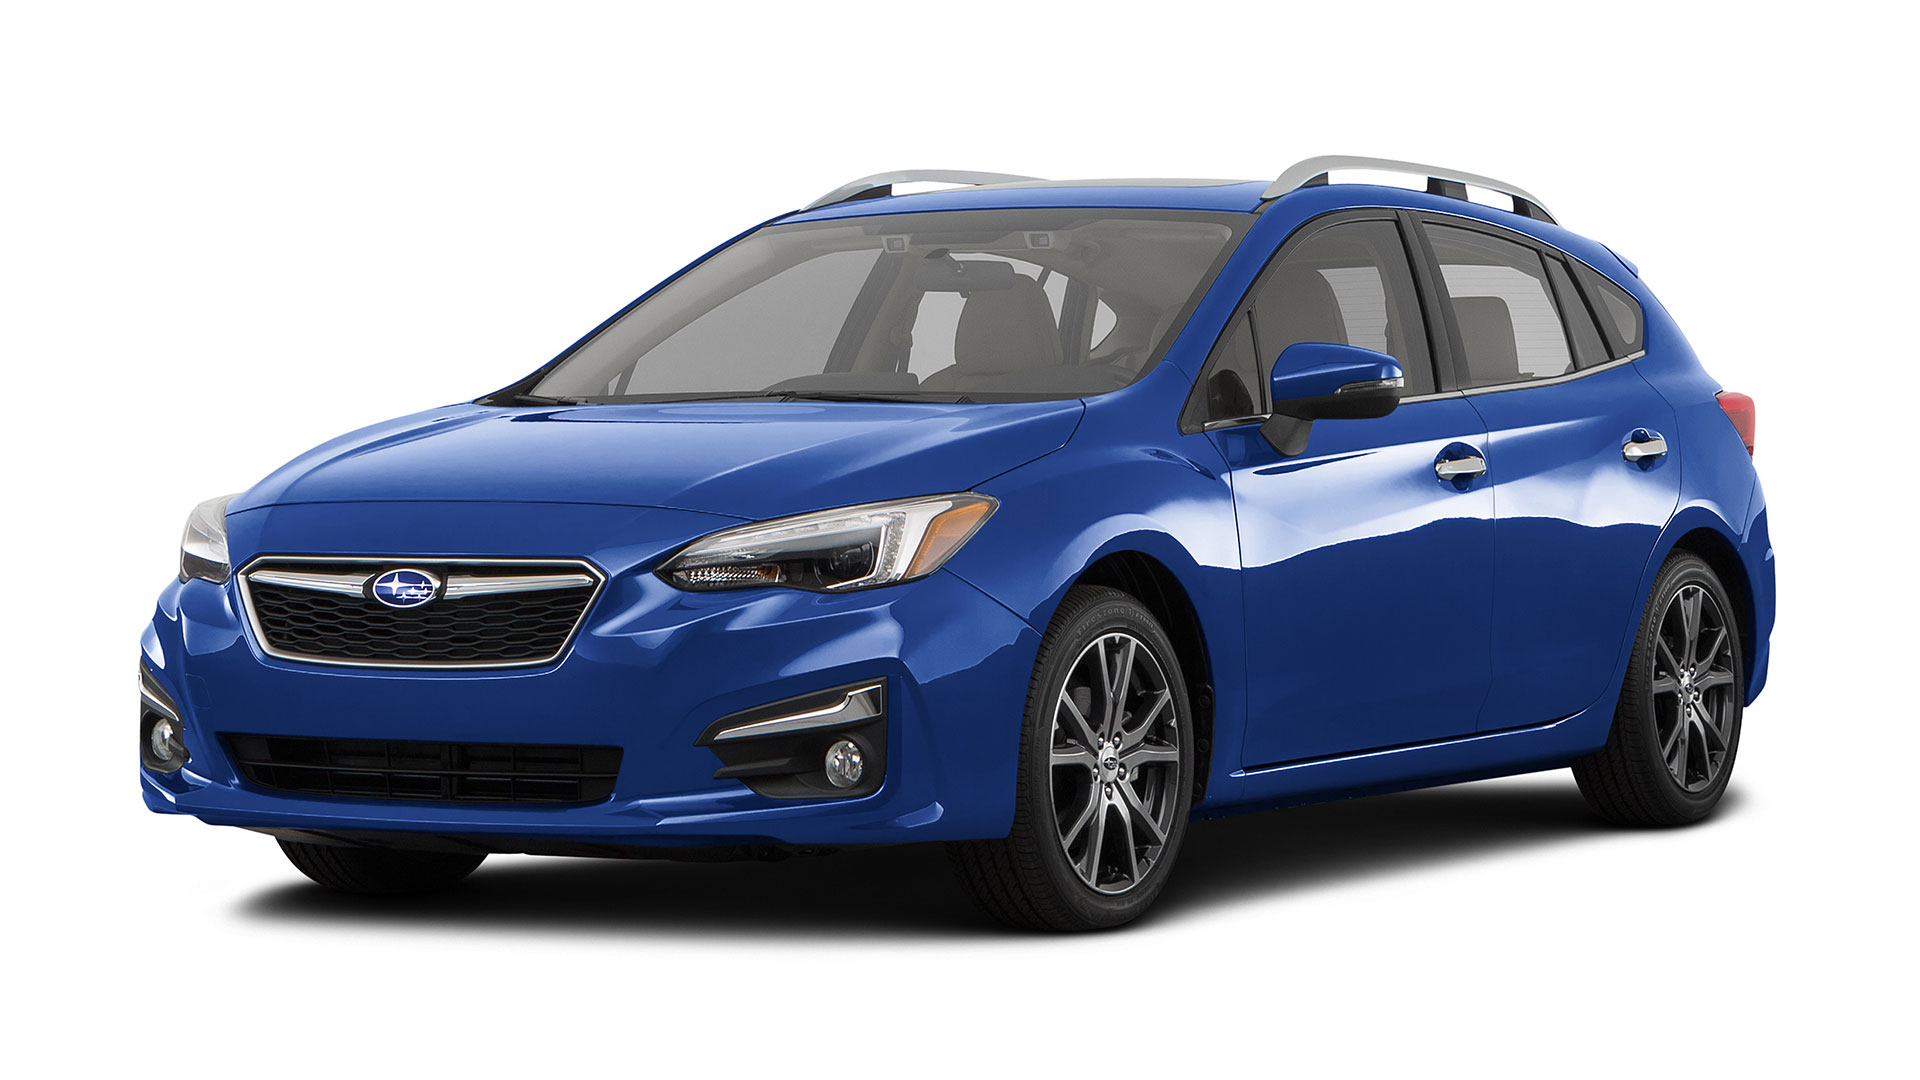 2018 Subaru Impreza 4-door wagon